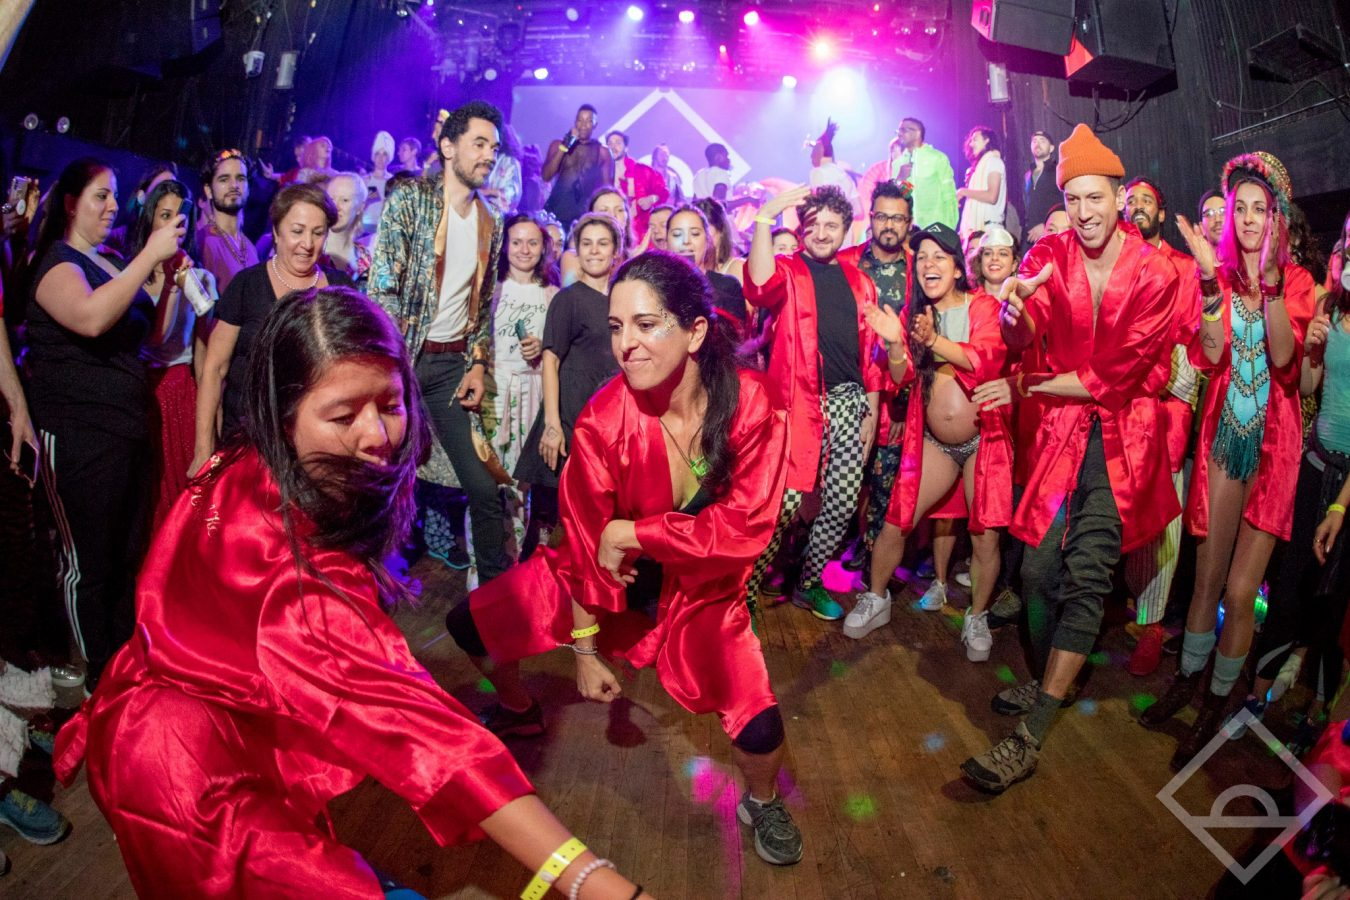 Raves Near Me >> Why People Are Waking Up For Sober Morning Raves Instead Of The Gym